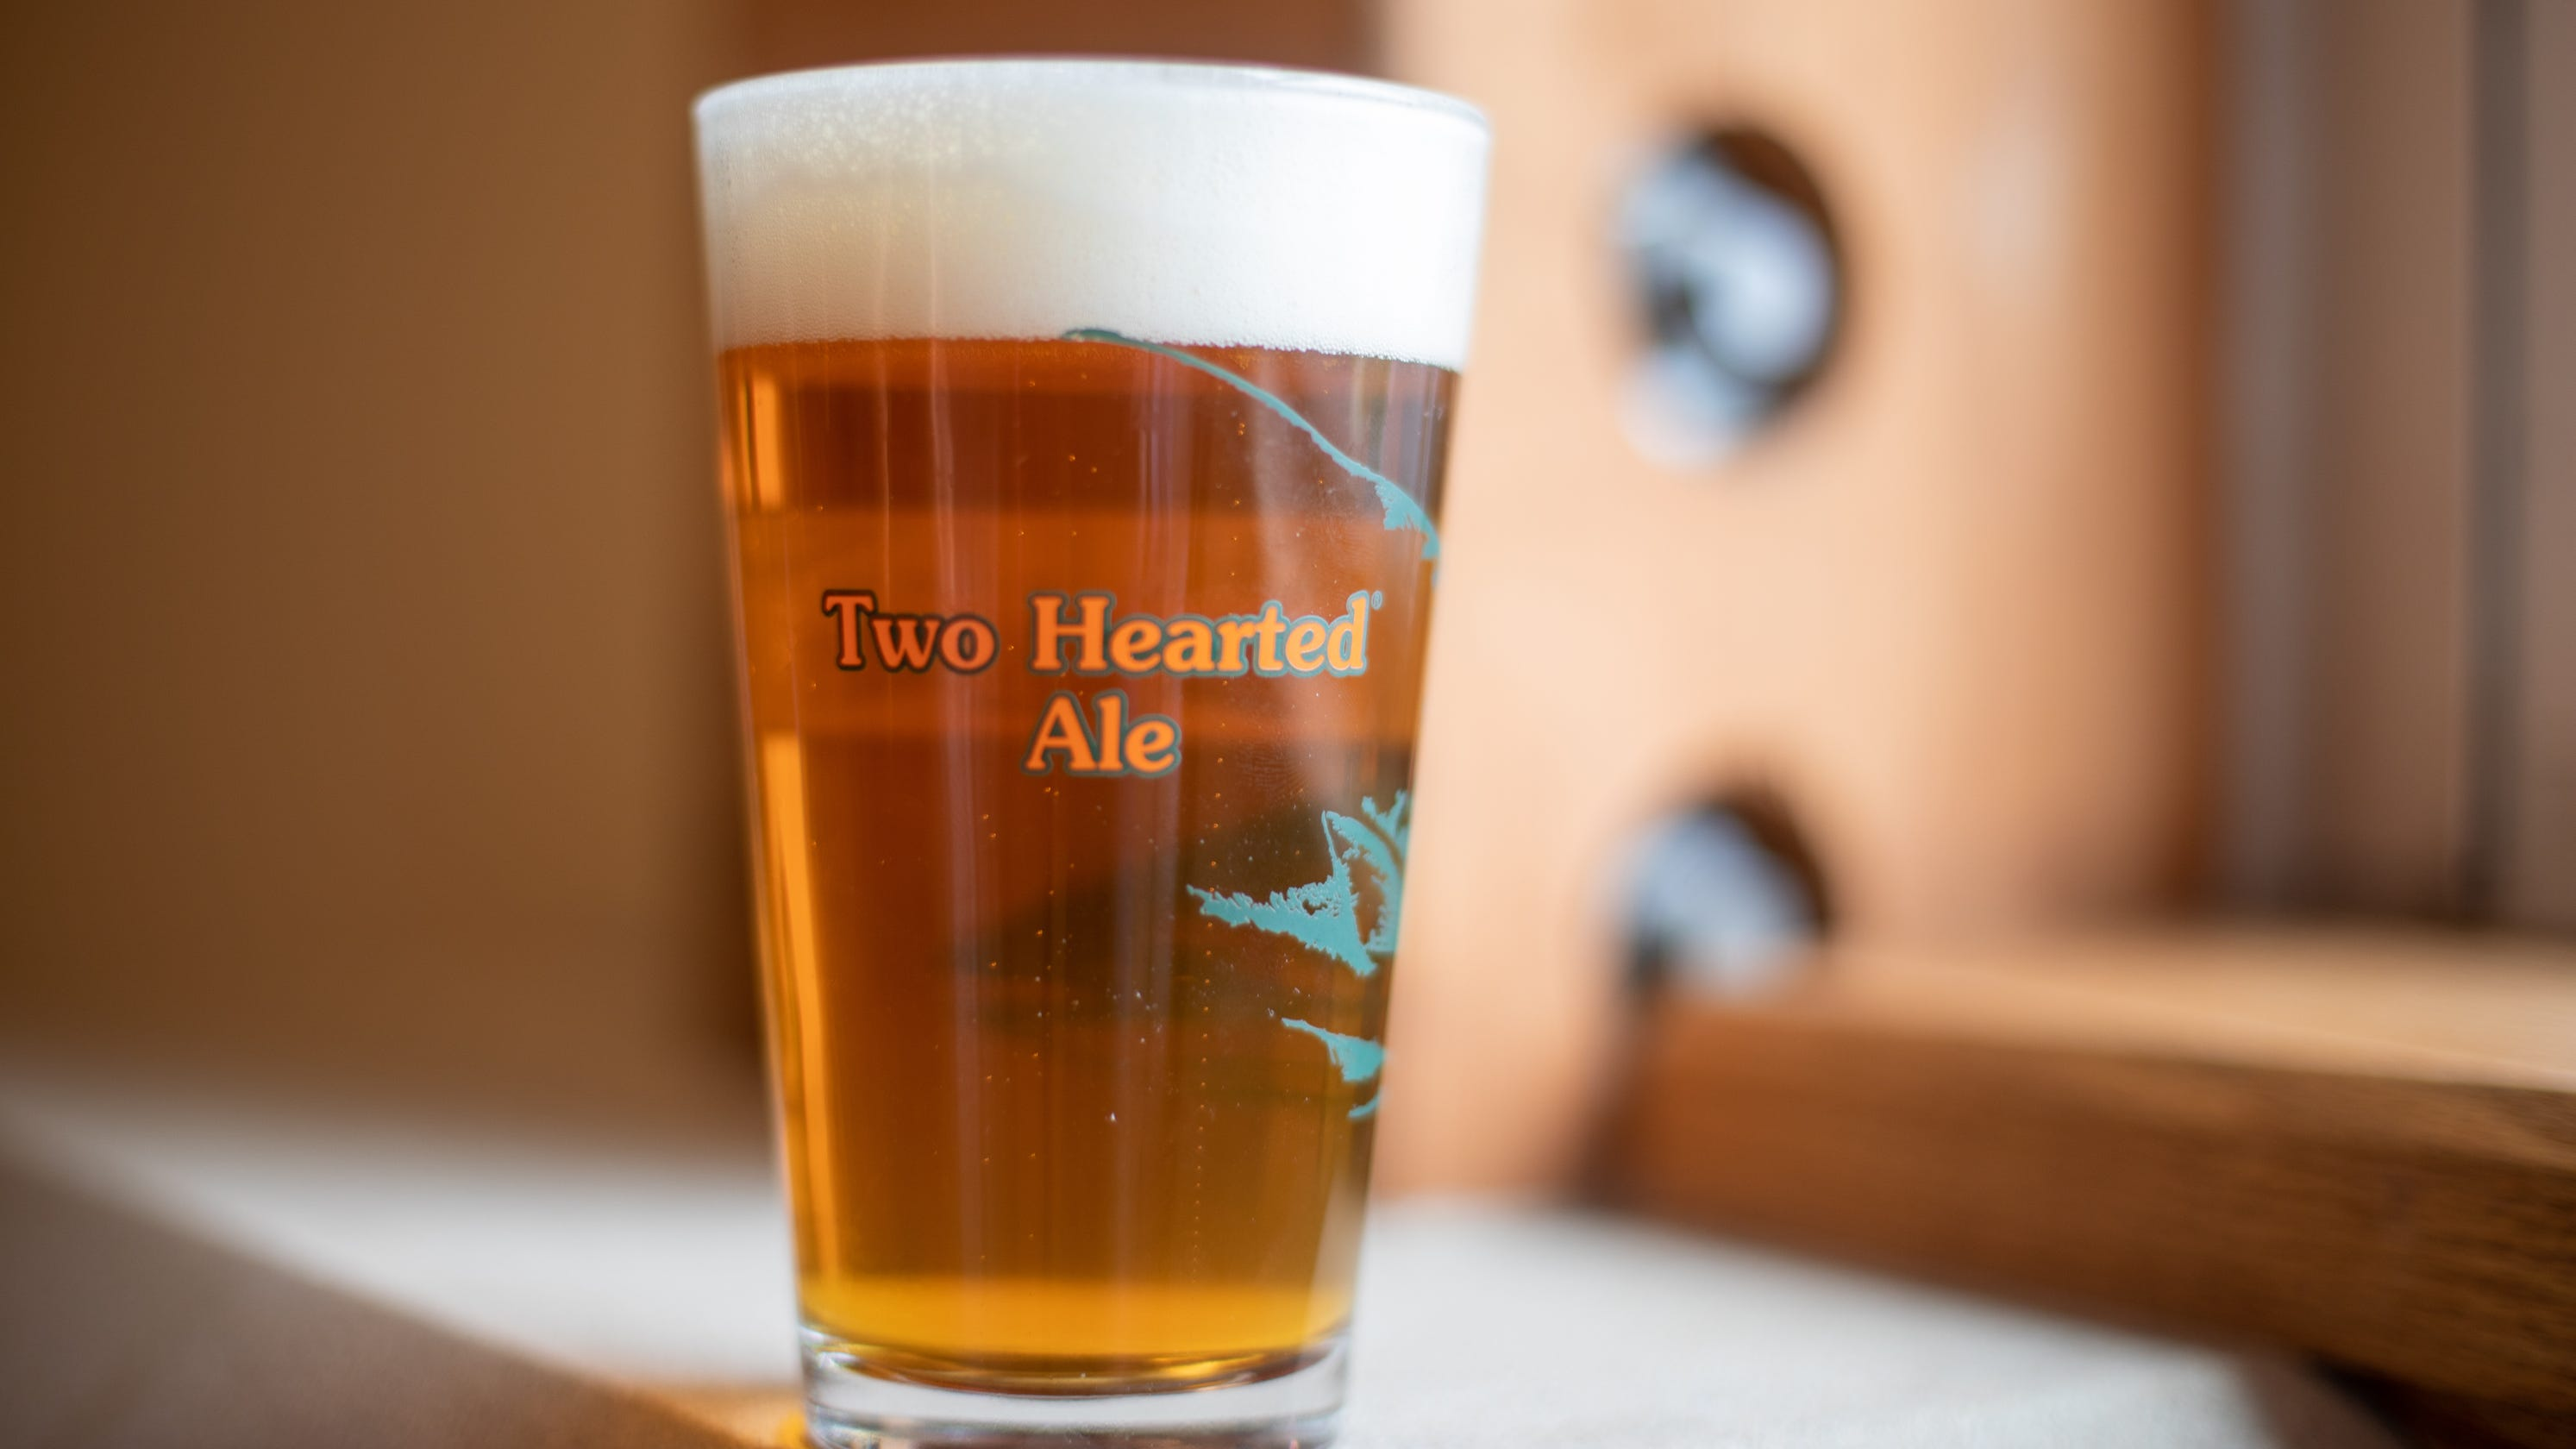 Best Beer 2020 Bell's Brewery plans low calorie version of Two Hearted Ale in 2020